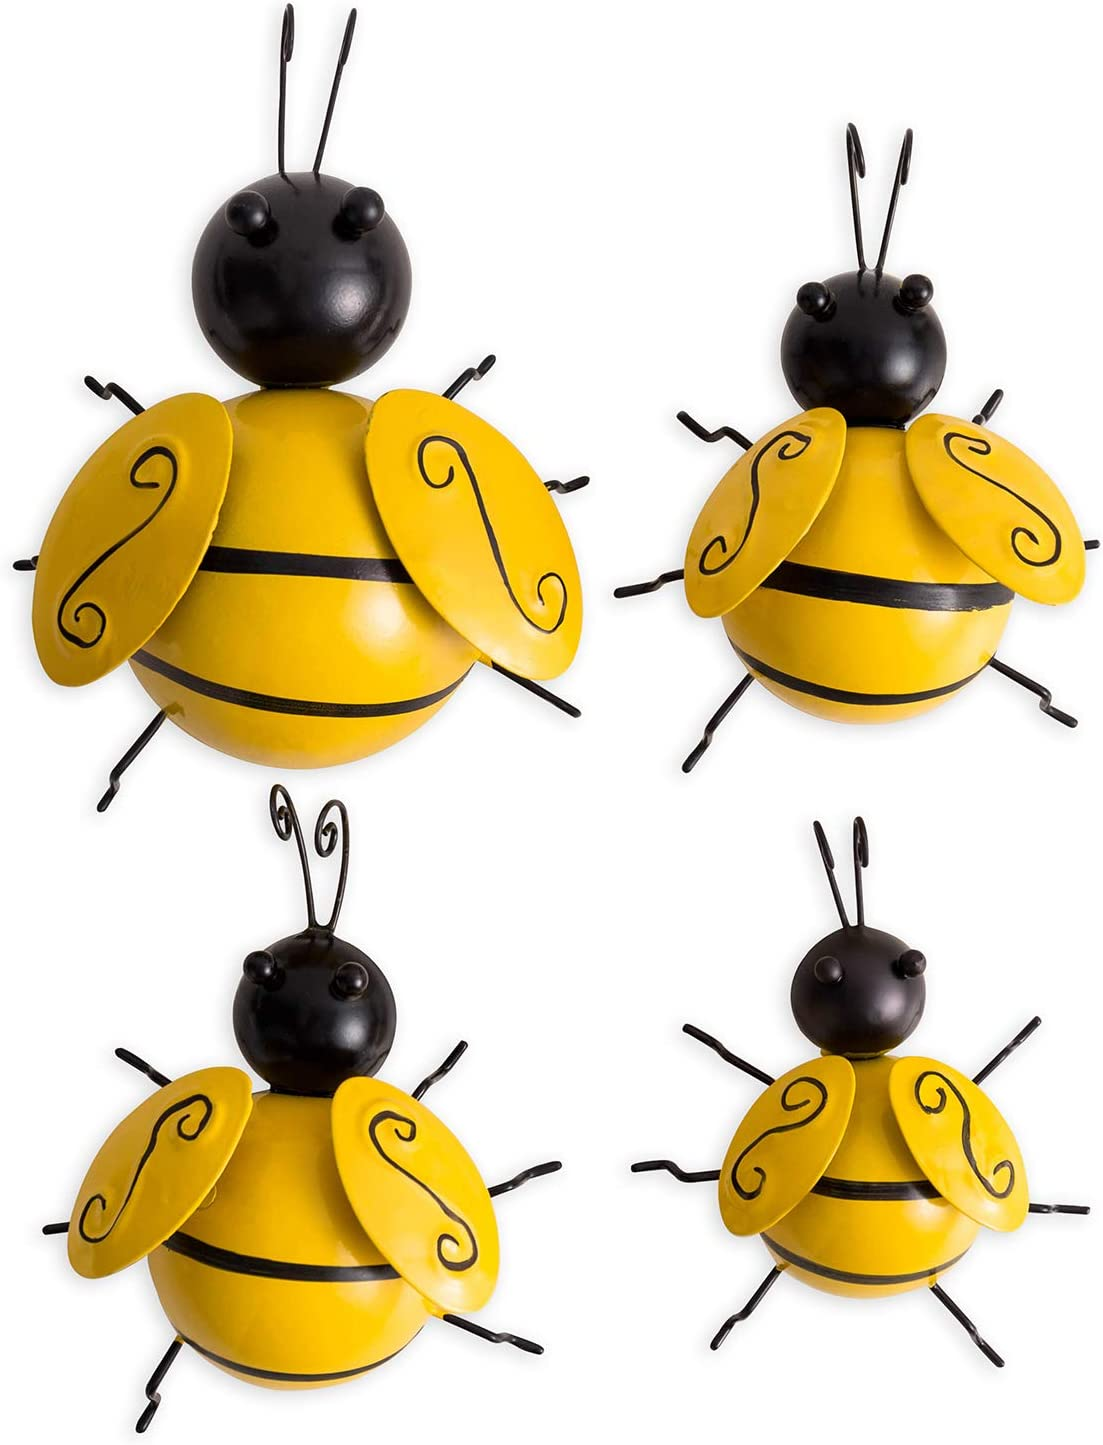 FJS Metal Bumble Bee Sculpture Set of 4 Cute Little Bugs Wall Art Decor, Hanging for Indoor and Outdoor, for Home or Garden Decoration